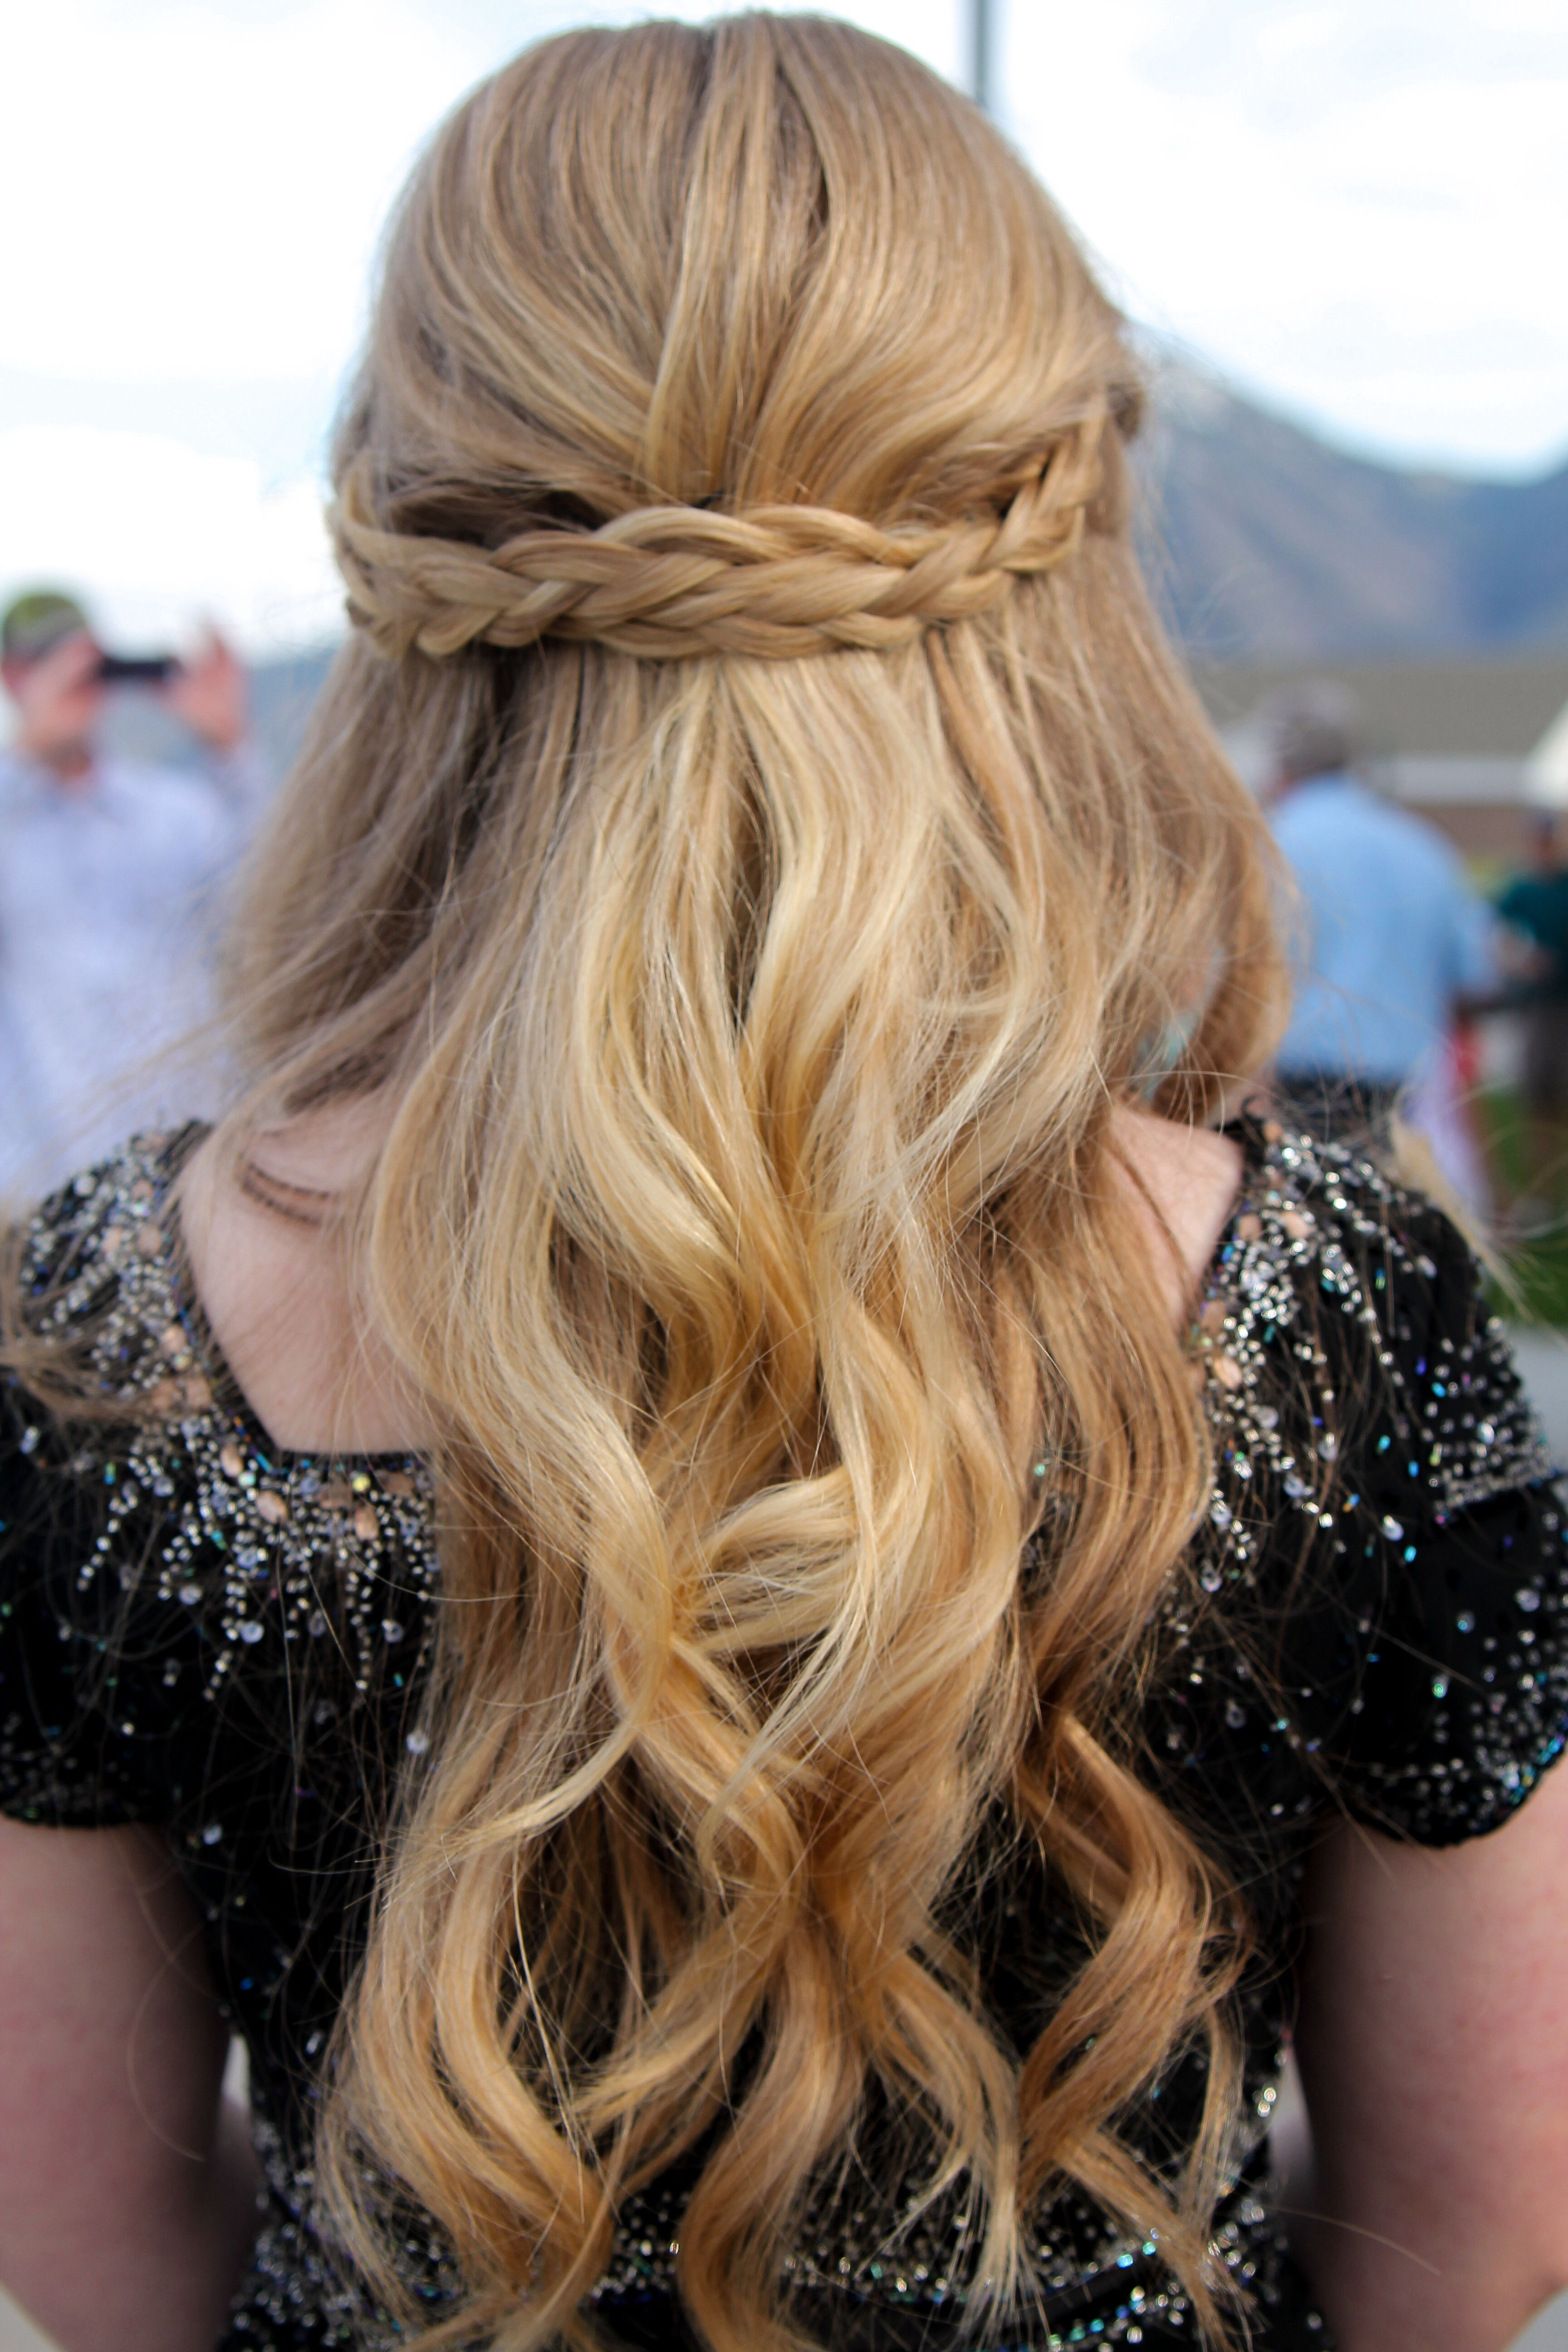 Enjoyable Prom Hair Brides And Homecoming On Pinterest Hairstyles For Men Maxibearus